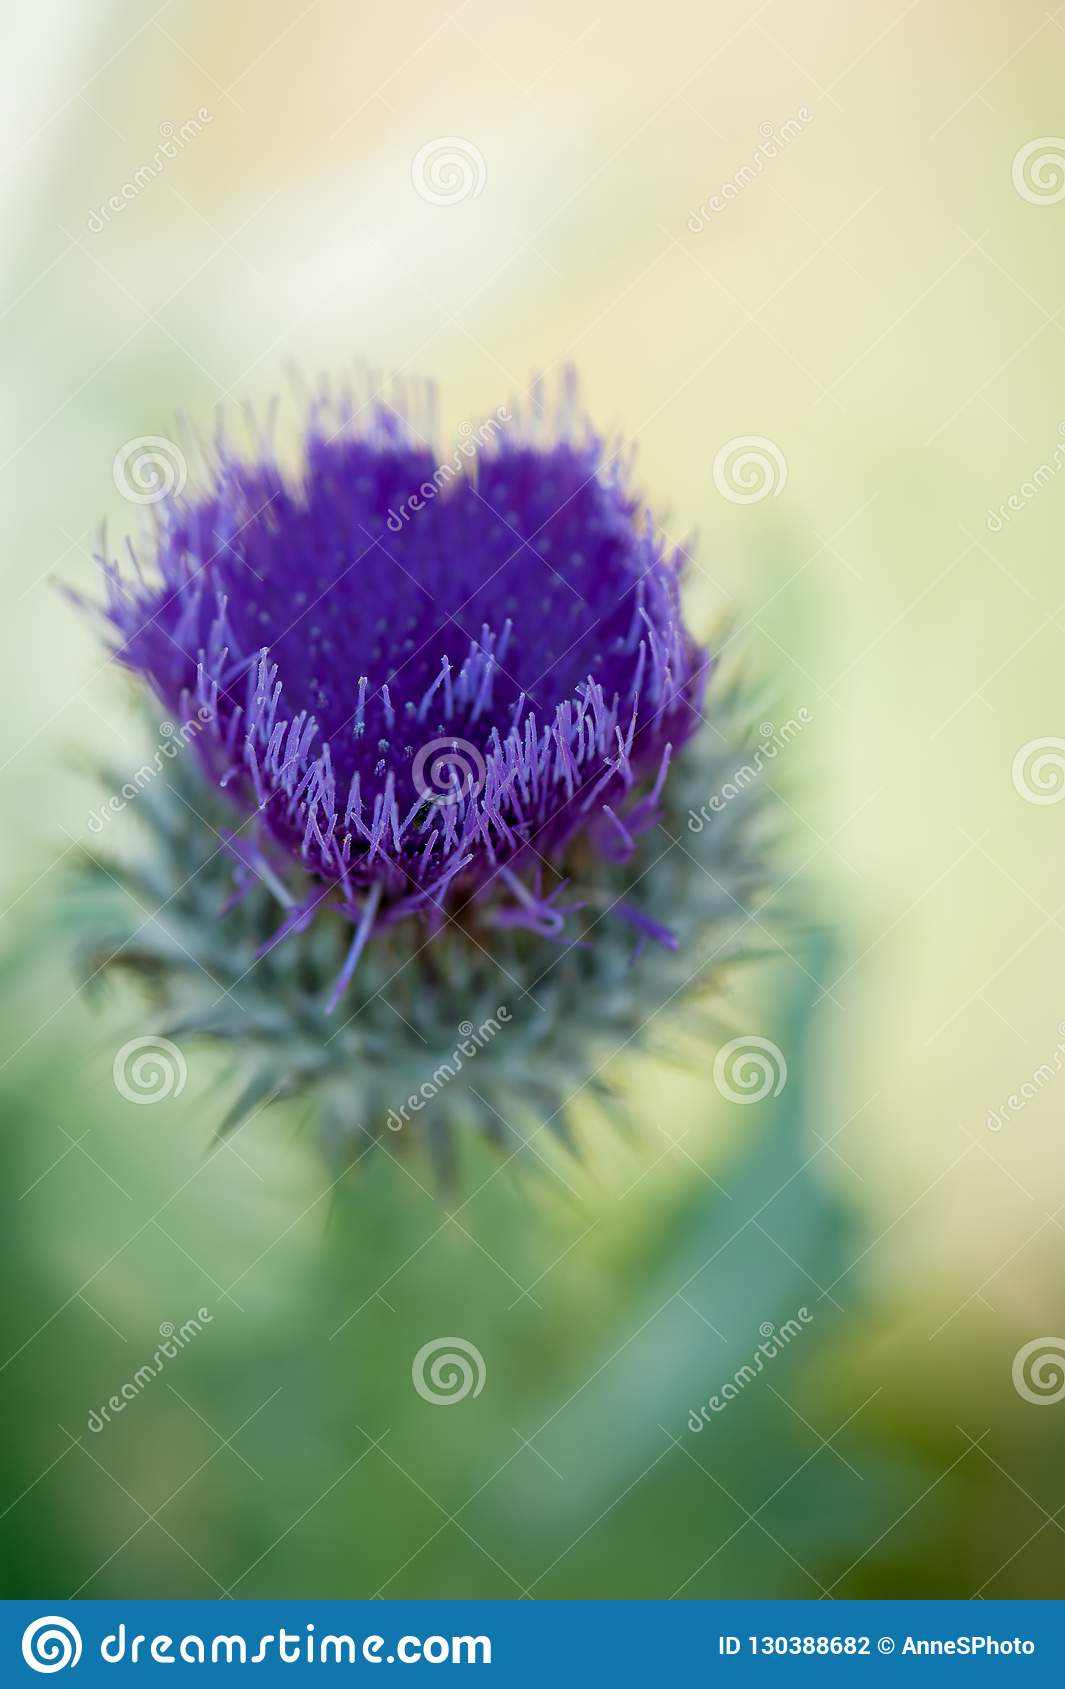 Purple thistle flower in the shape of a heart with shallow depth of field.